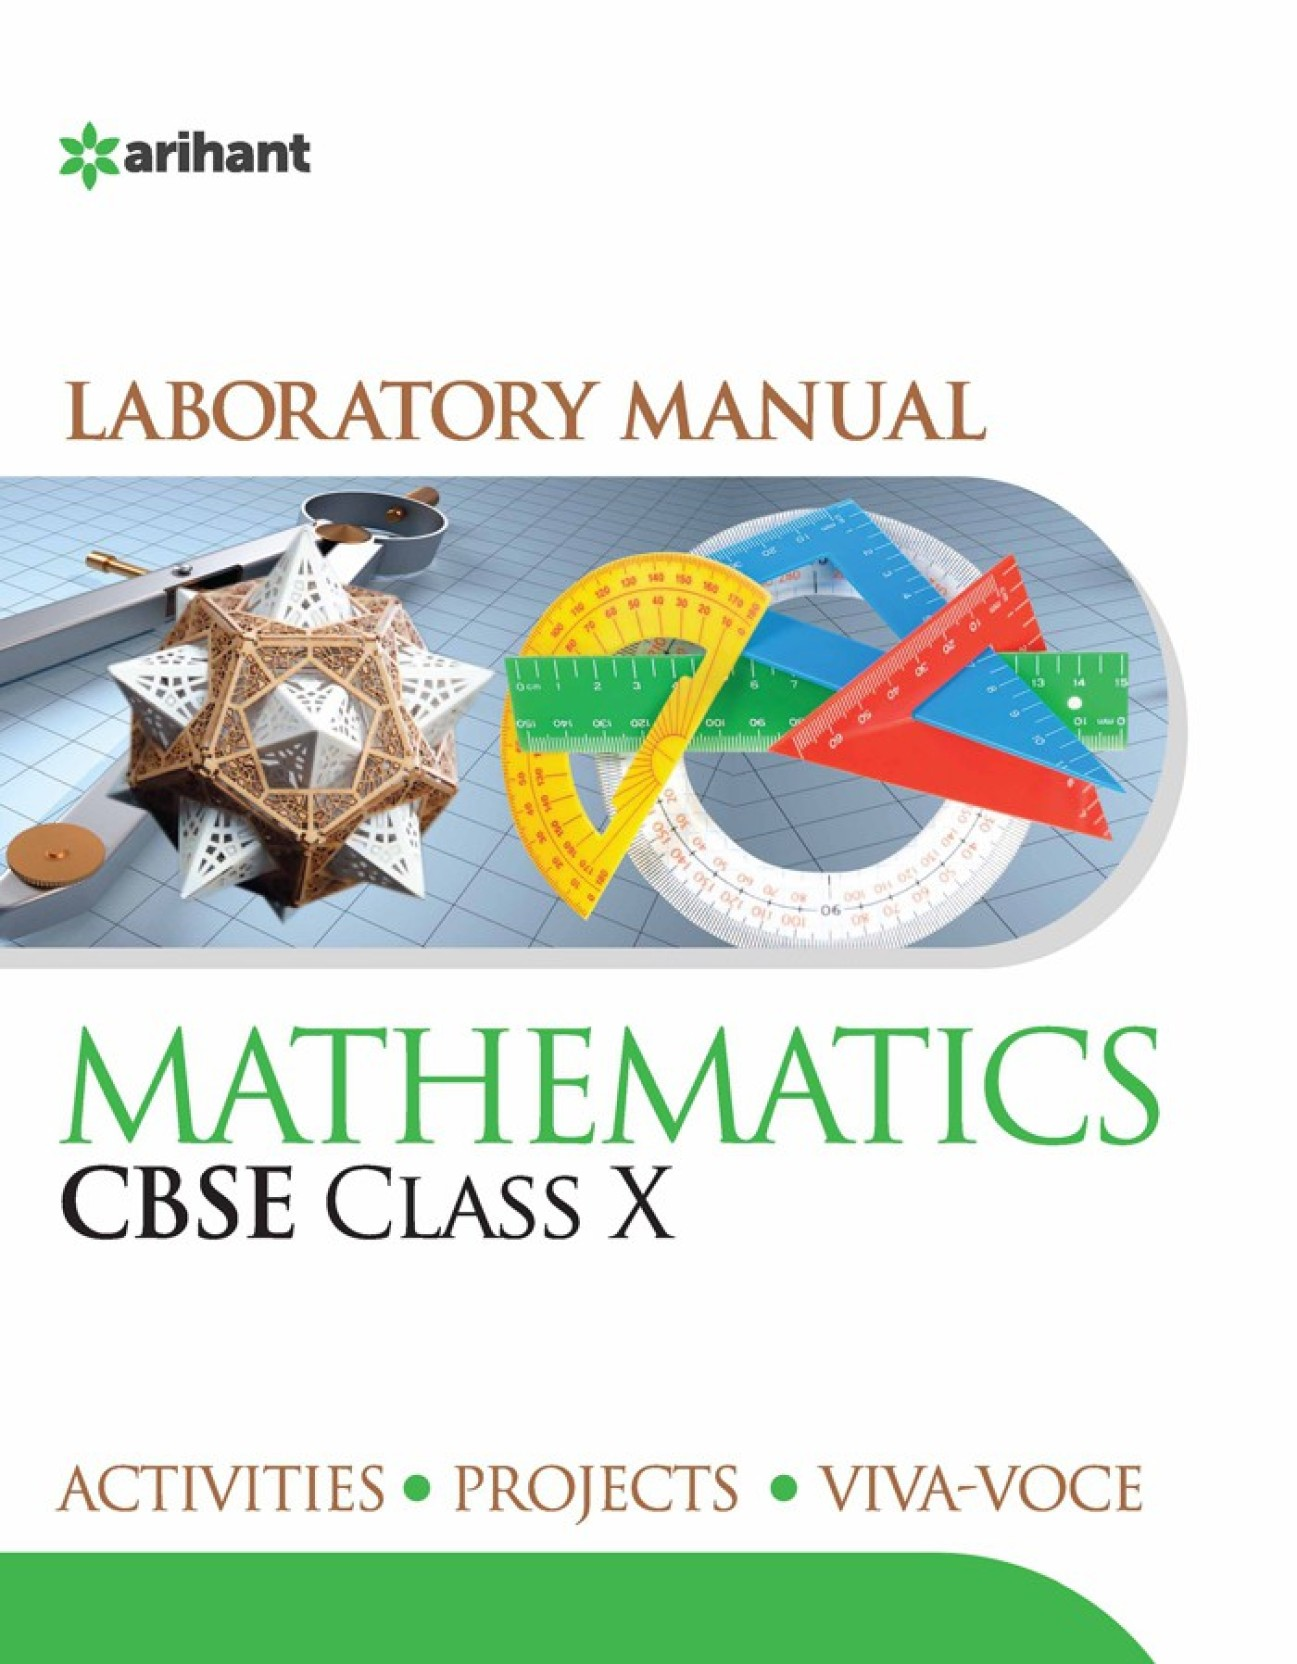 CBSE Mathematics Laboratory Manual for Class X : Includes Activities,  Projects and Viva - Voce. ADD TO CART